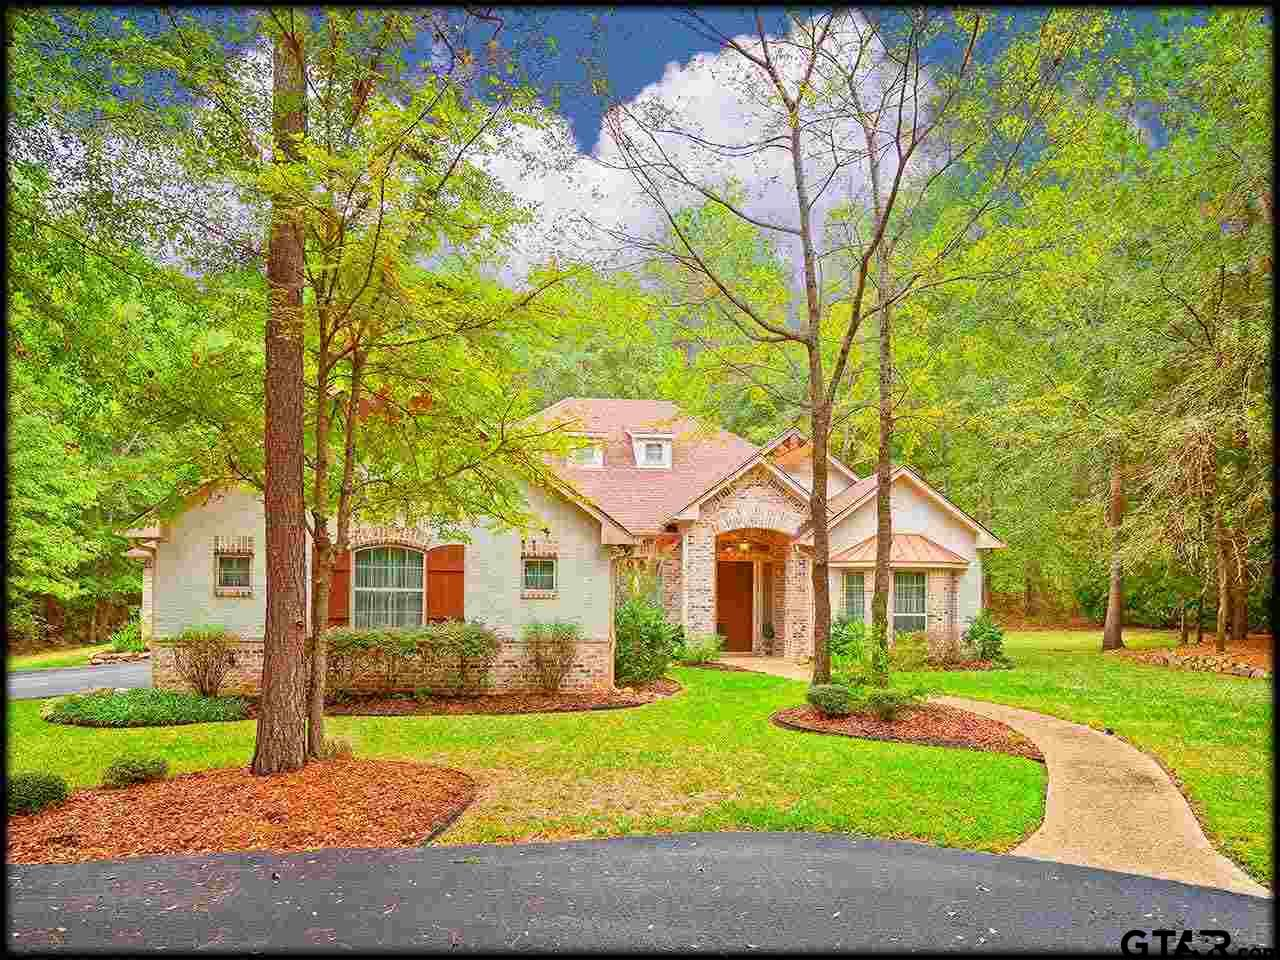 Lovely 2008 Custom Home with Pool near Lake Palestine. Home is located on a 2.88 acre cul-de-sac lot in the Lake Palestine gated community of Pine Ridge Estates, which has 3 stocked ponds for fishing, plus an acre waterfront lot with boat ramp & fishing pier. Handsome Cedar trim accents the 1 story home. Step inside to view the open formal dining space, entry hall, formal living room & study with French doors. Main living area has  15' vaulted ceilings with rustic cedar trusses, corner stone fireplace and is open to kitchen & breakfast areas. Enjoy pool views through 4 sets of sliding glass doors. Kitchen has white custom cabinets, island with breakfast bar, pantry, mosaic backsplash, granite & black appliances. Split master suite has faux fireplace (gas line available in wall) and sitting area. Master bath has jetted tub, shower & large walk-in closet. 2 guest rooms share Jack/Jill bath, 4th bedroom has private bath. 3 car garage. Awesome pool & patio! Jack/3 Lakes/RE Lee schools.